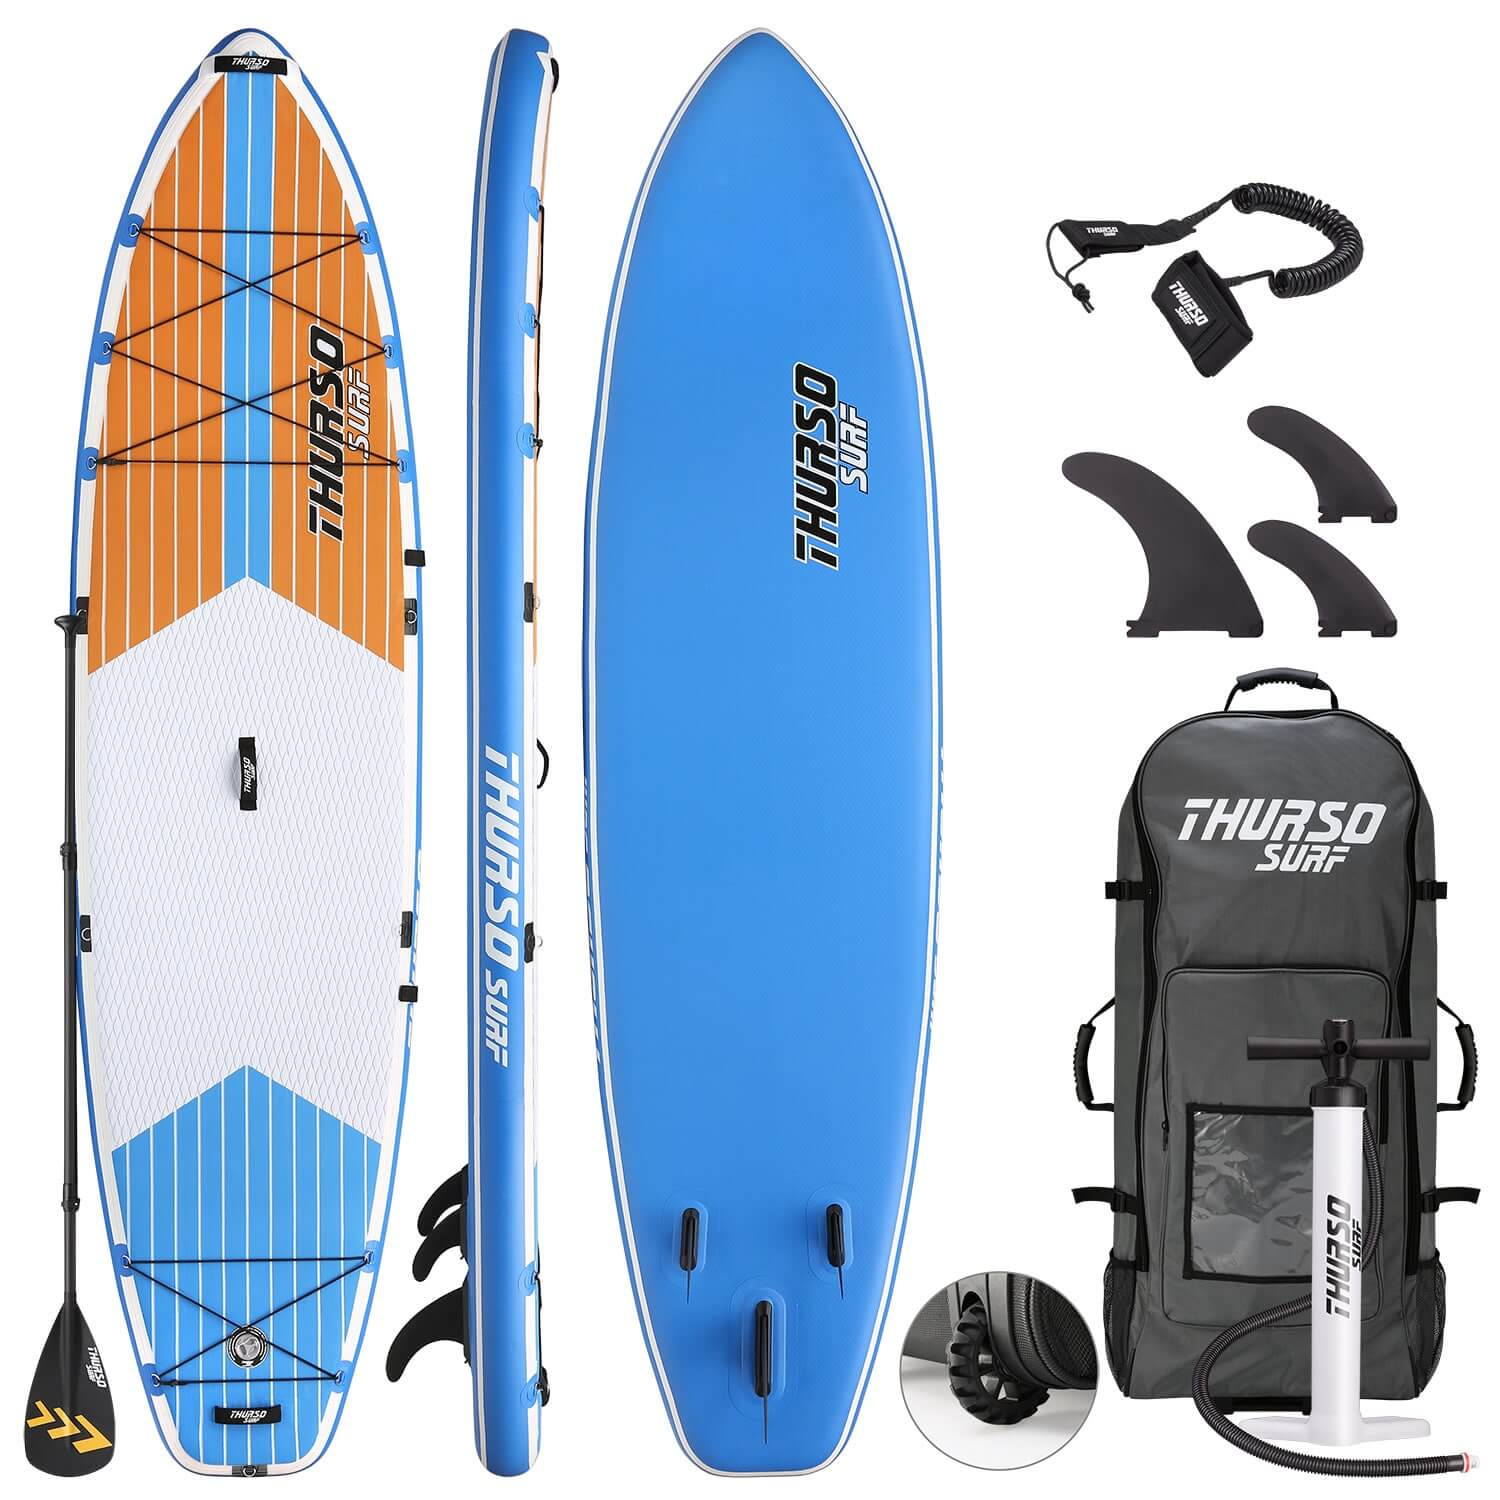 thurso surf max multi purpose sup